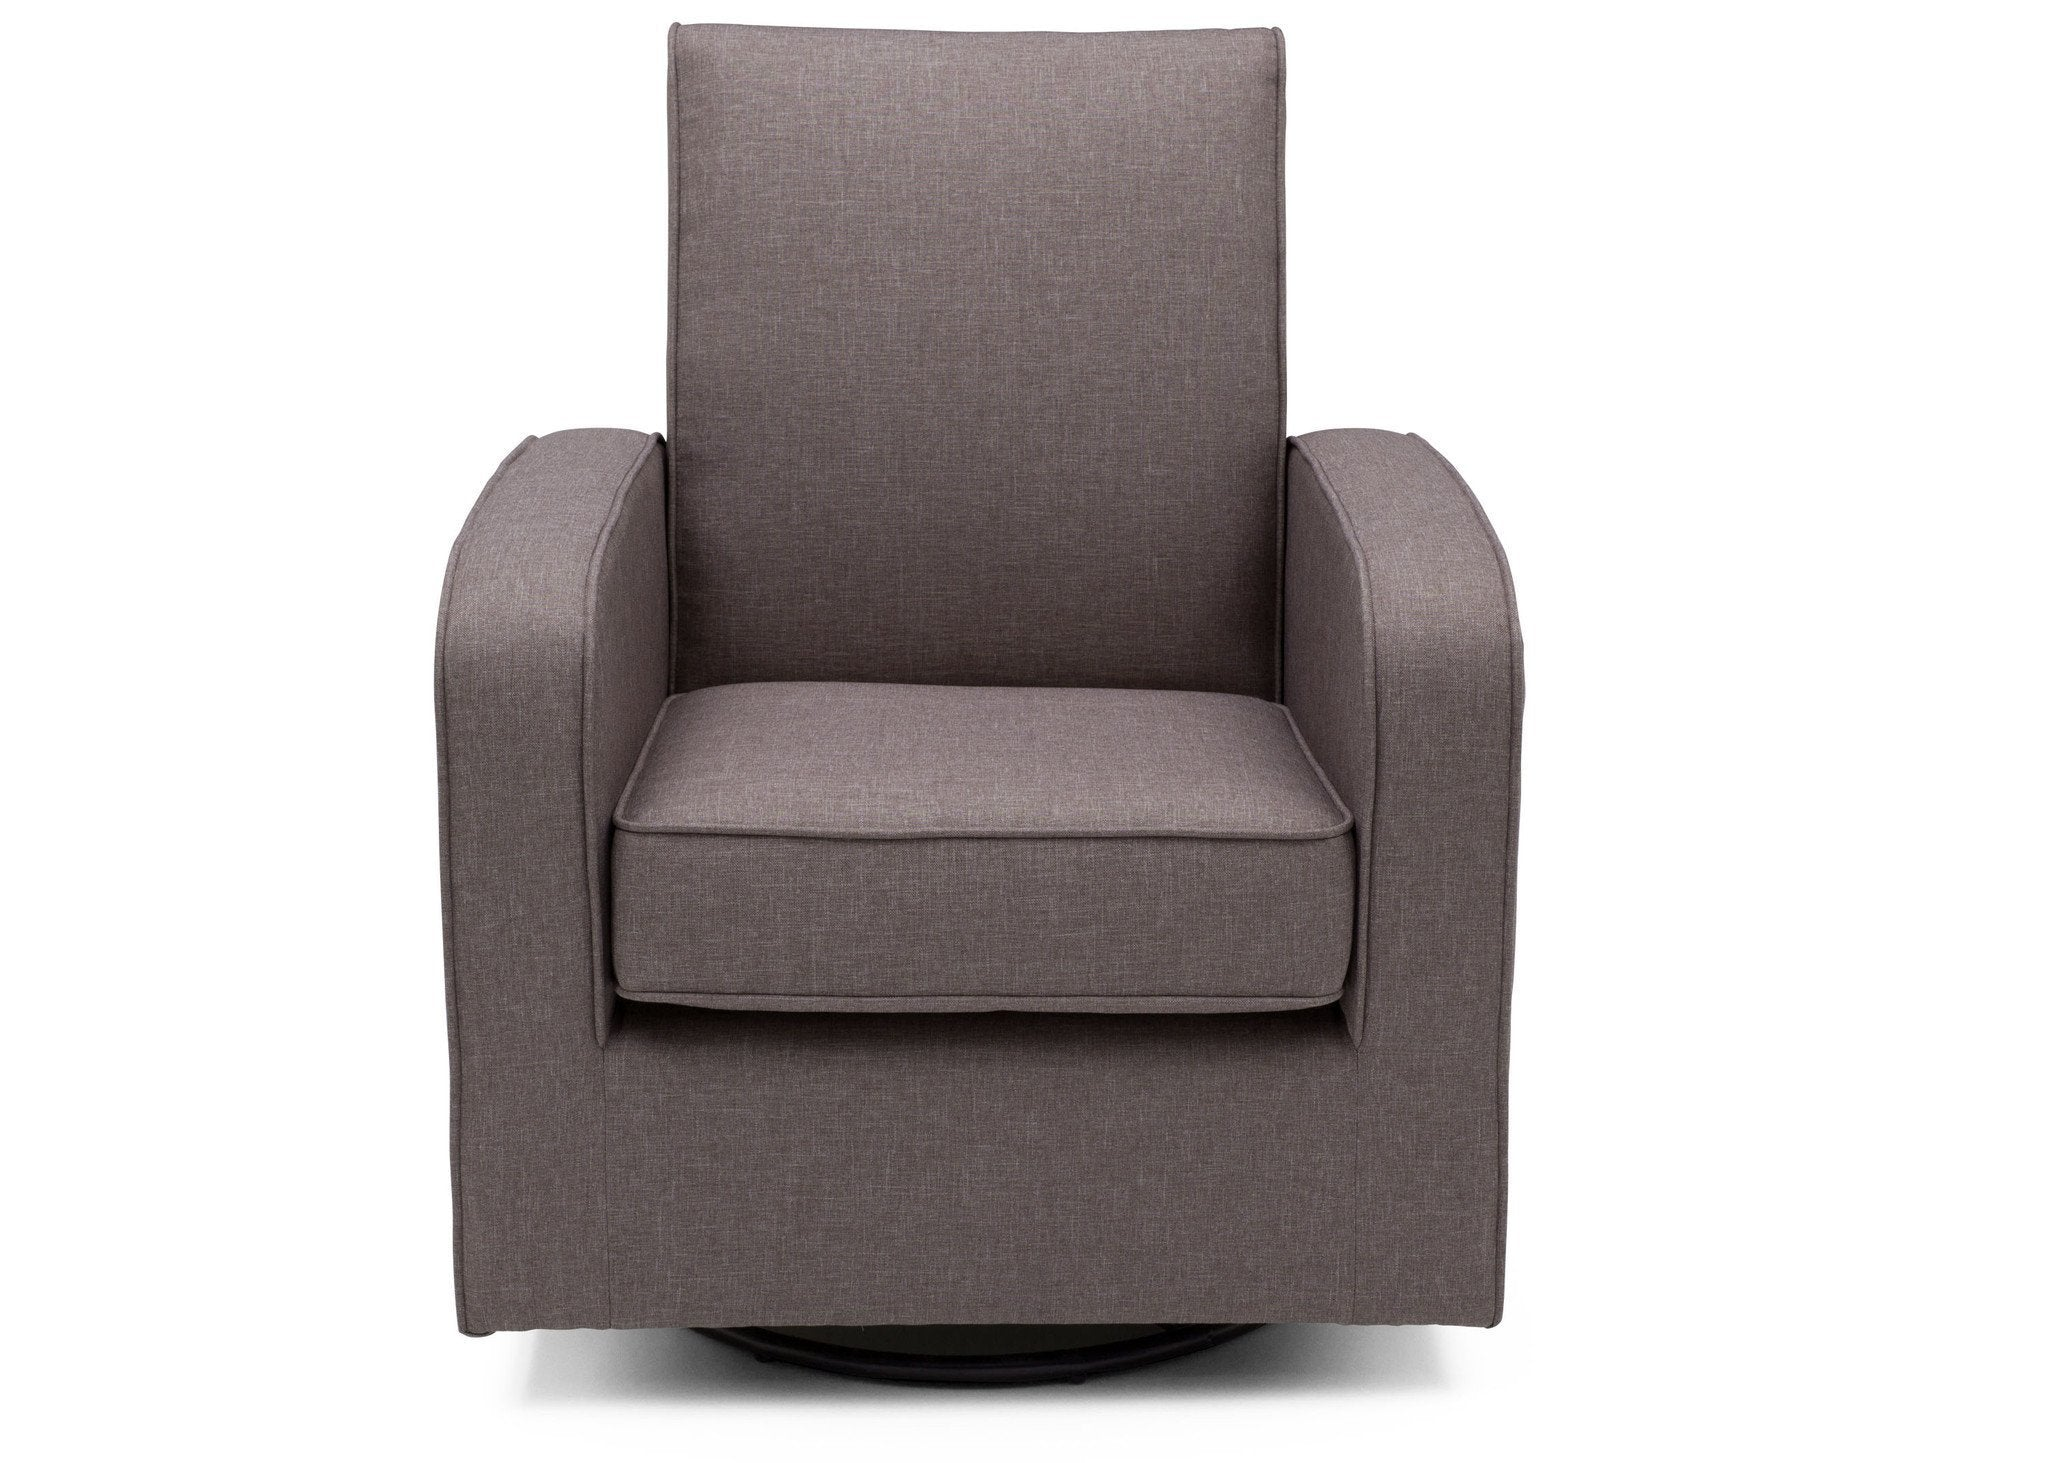 Delta Children Twilight Grey (076) Charlotte Nursery Glider Swivel Rocker Chair, Front View, a2a